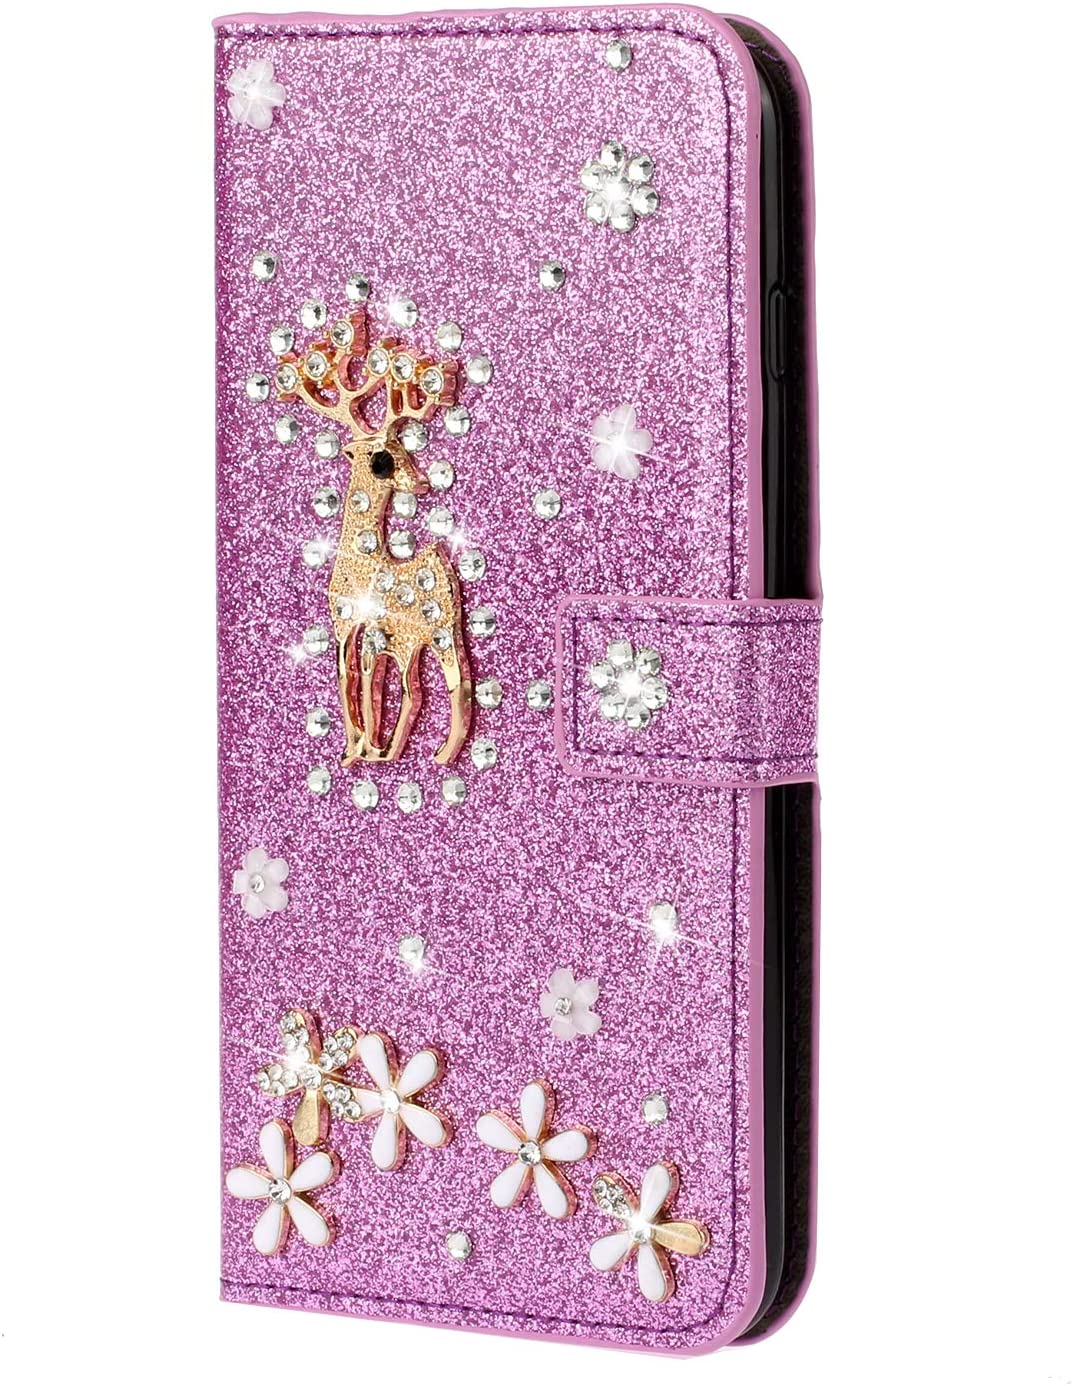 Cfrau Glitter Flip Case with Black Stylus for iPhone 11 Pro 5.8 2019,Luxury Diamond 3D Crystal Flower Cute Deer Magnetic Wallet Leather Stand Case for iPhone 11 Pro 5.8 2019,Pink